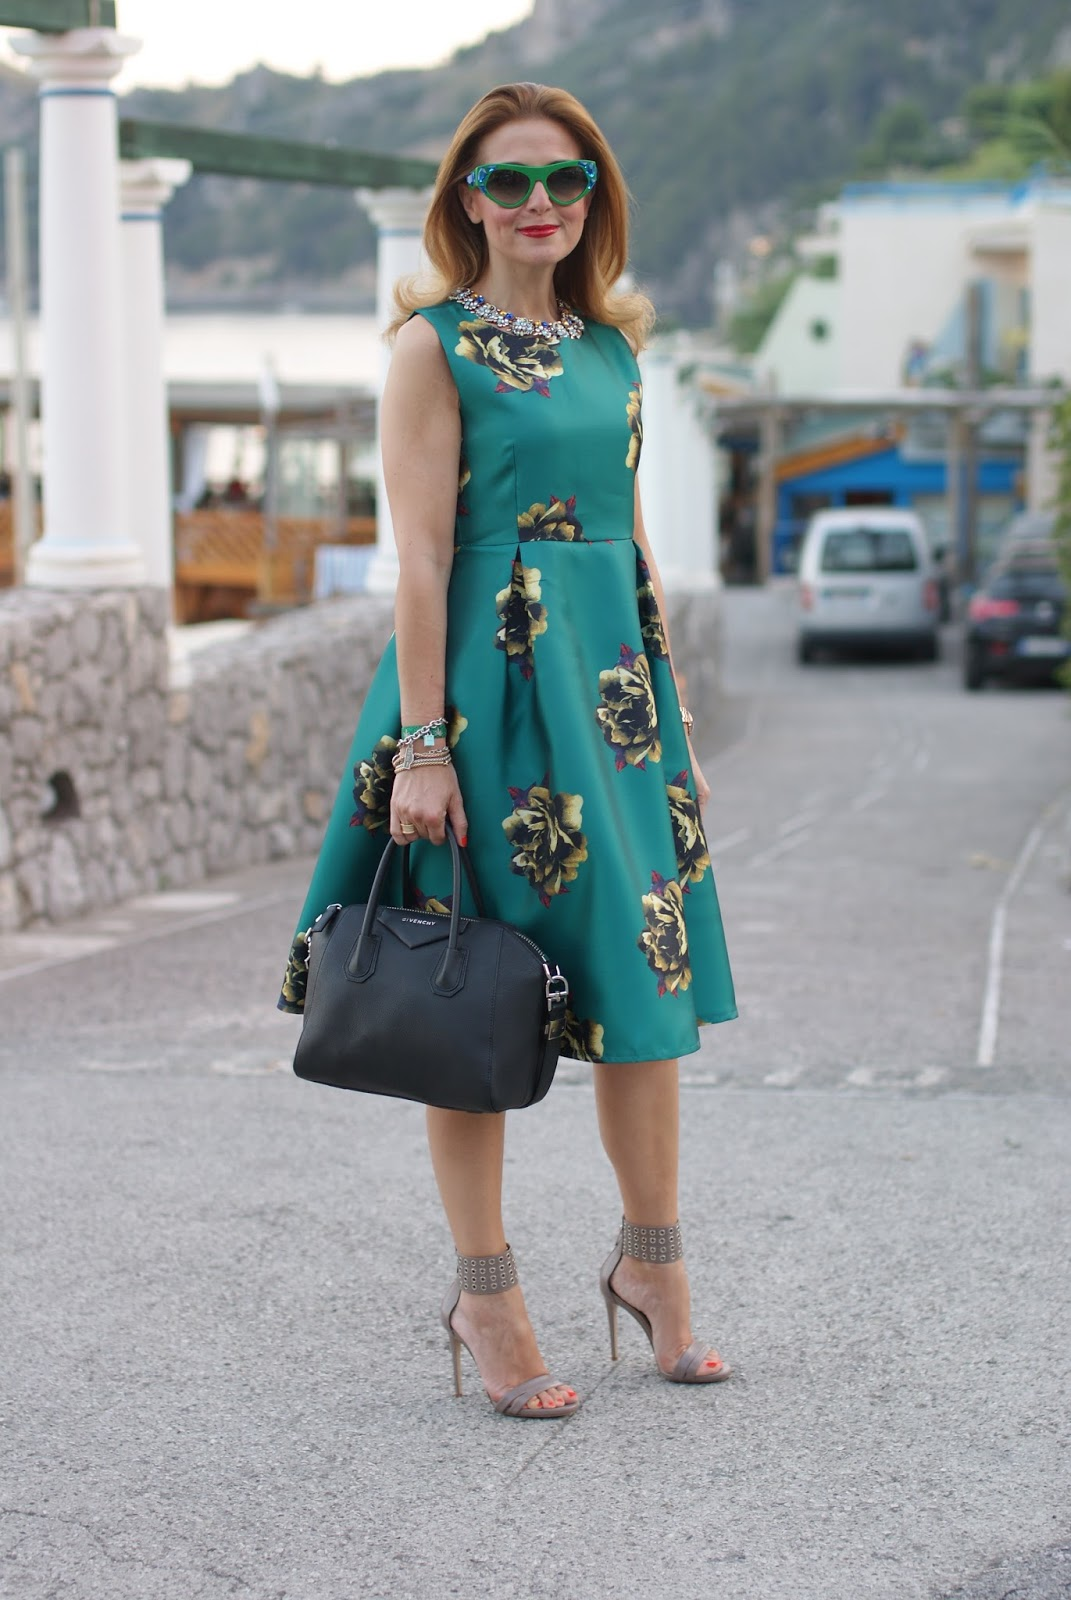 Choies green midi dress, Le Silla heels and Prada Voice sunglasses found on Giarre on Fashion and Cookies fashion blog, fashion blogger style